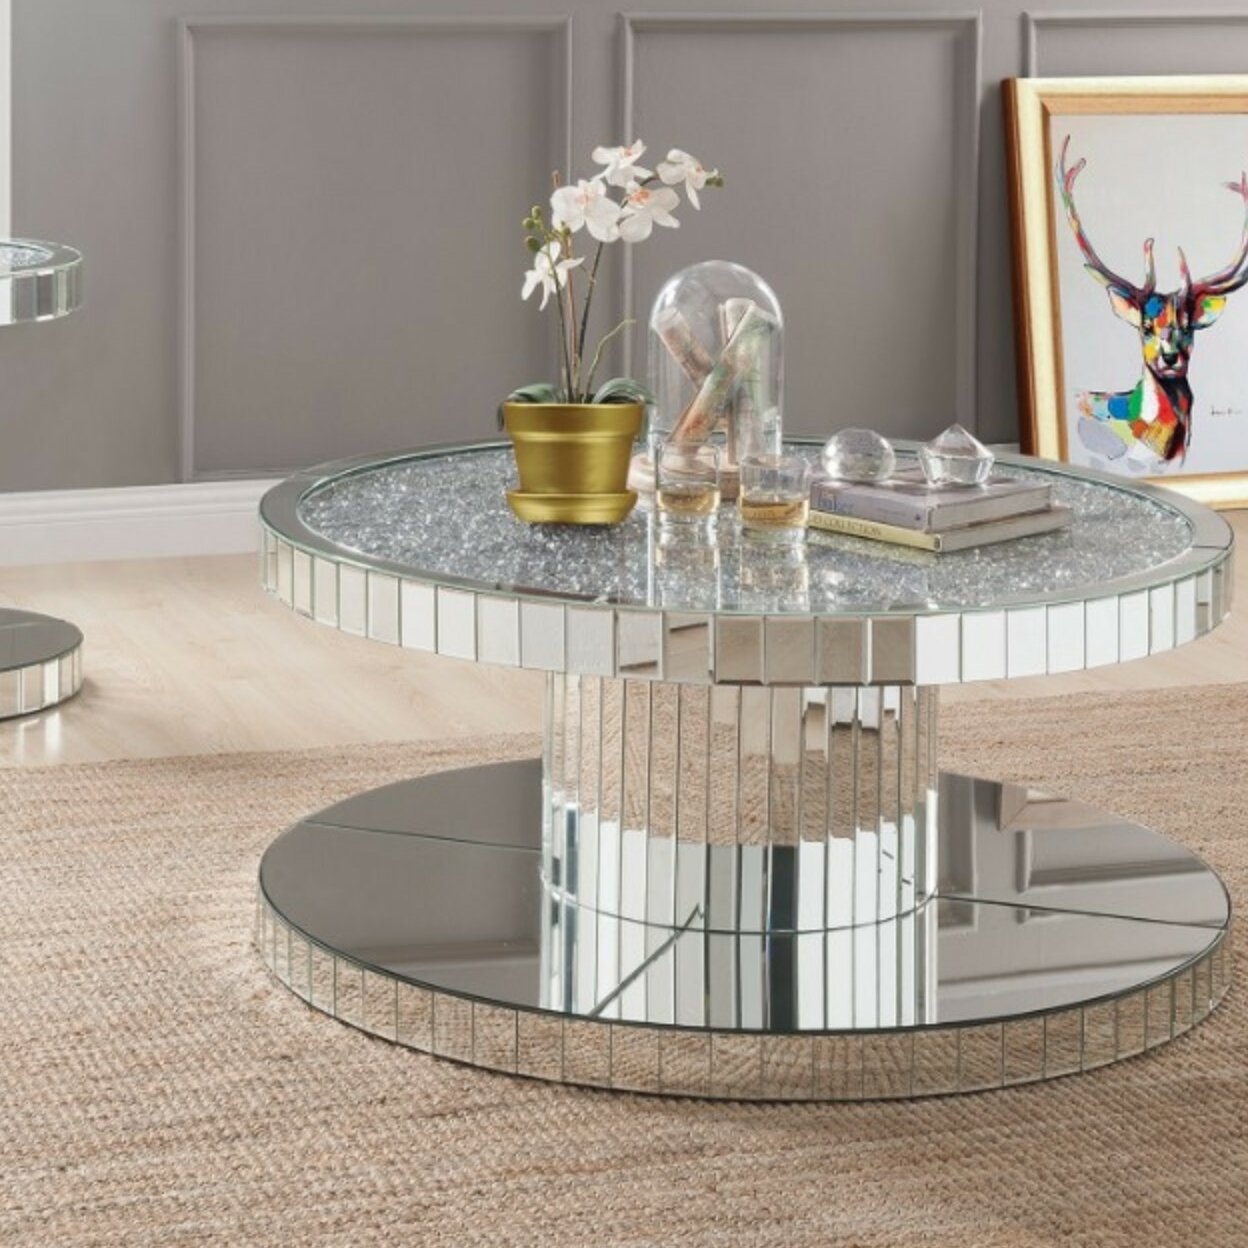 All Mirror Coffee Table.Shay Modern Round Mirror Coffee Table